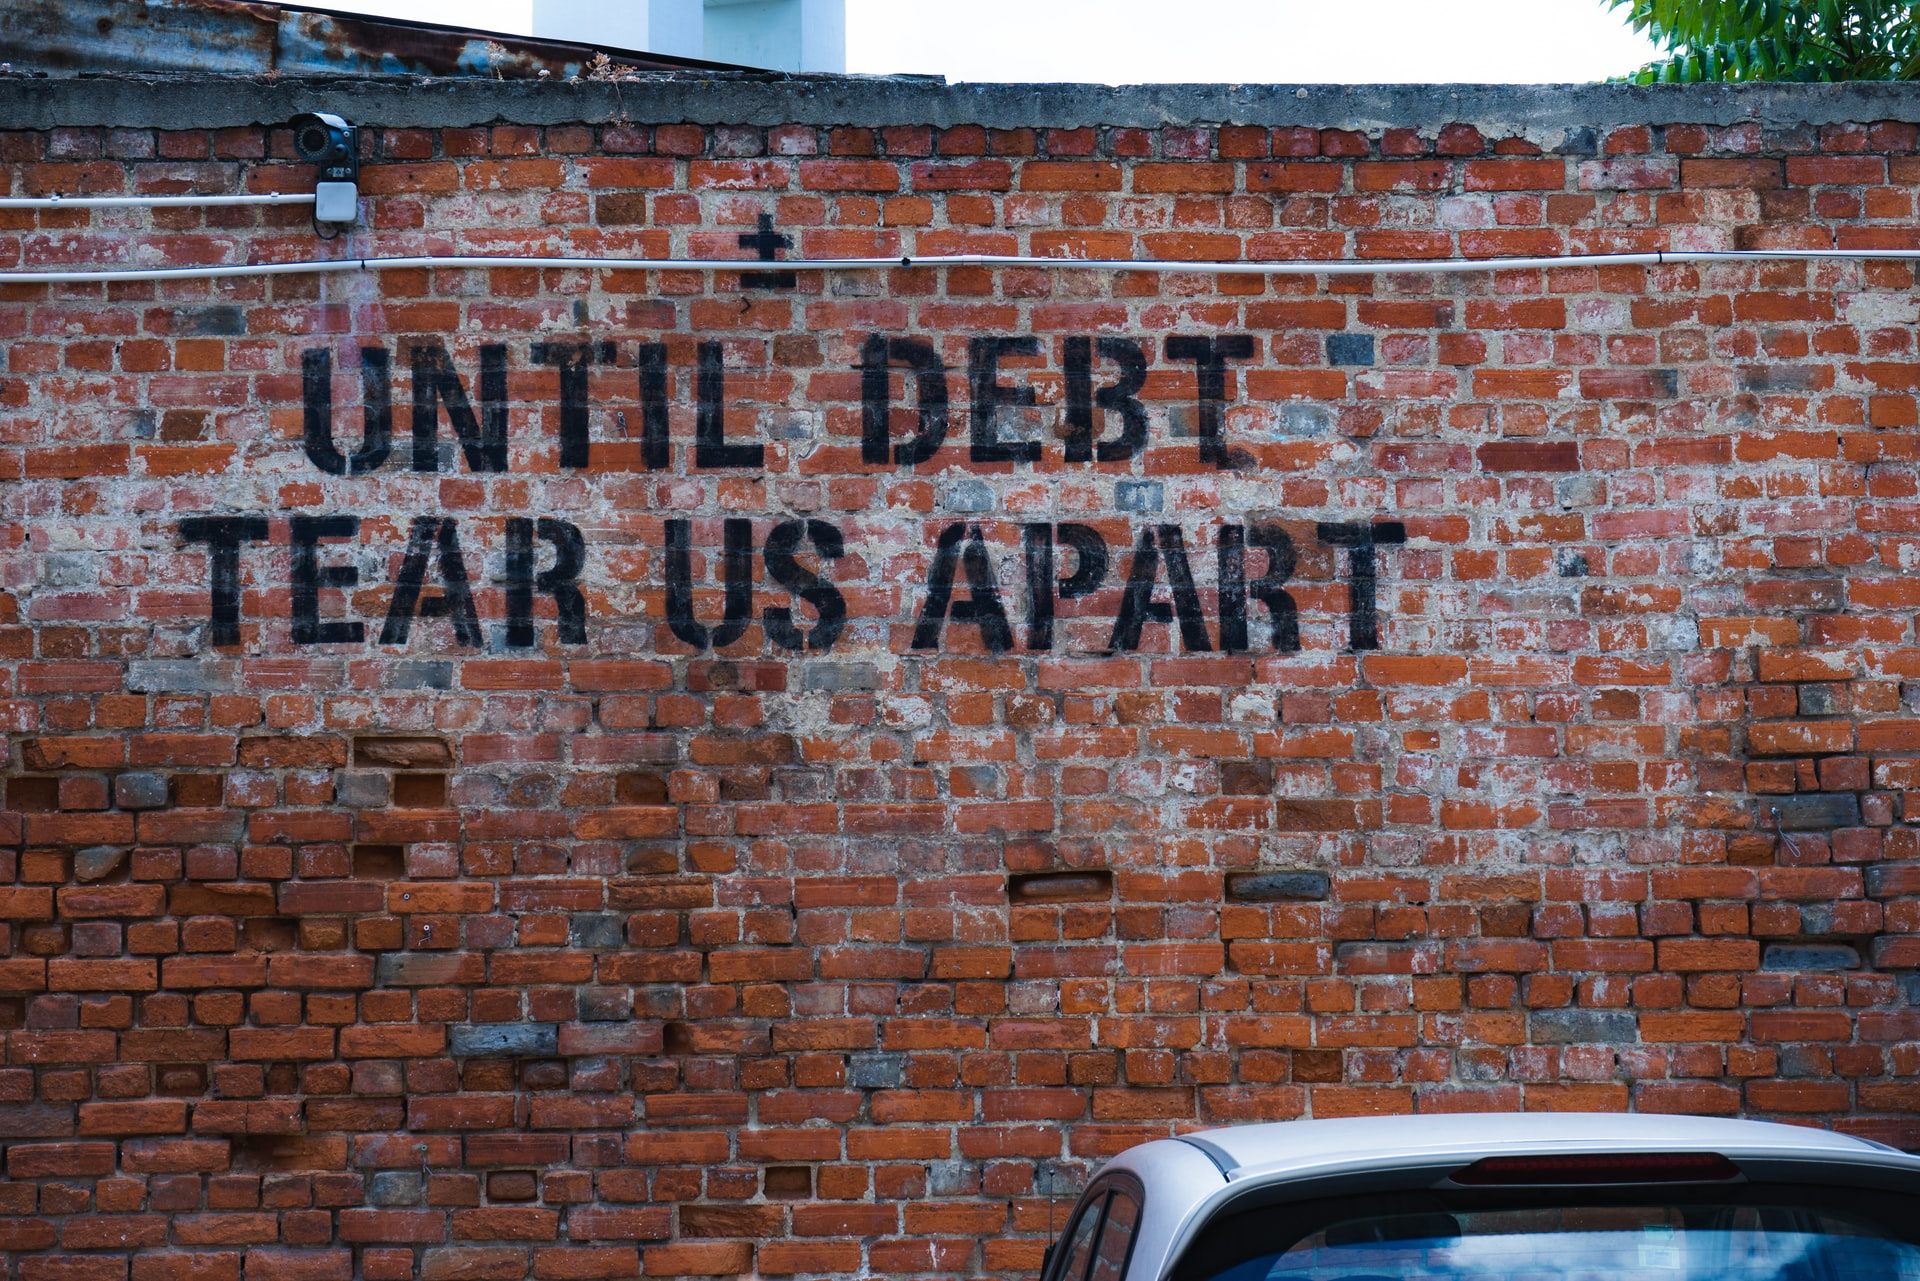 Finance News - US Household Debt Soars to Record $14.96 Trillion